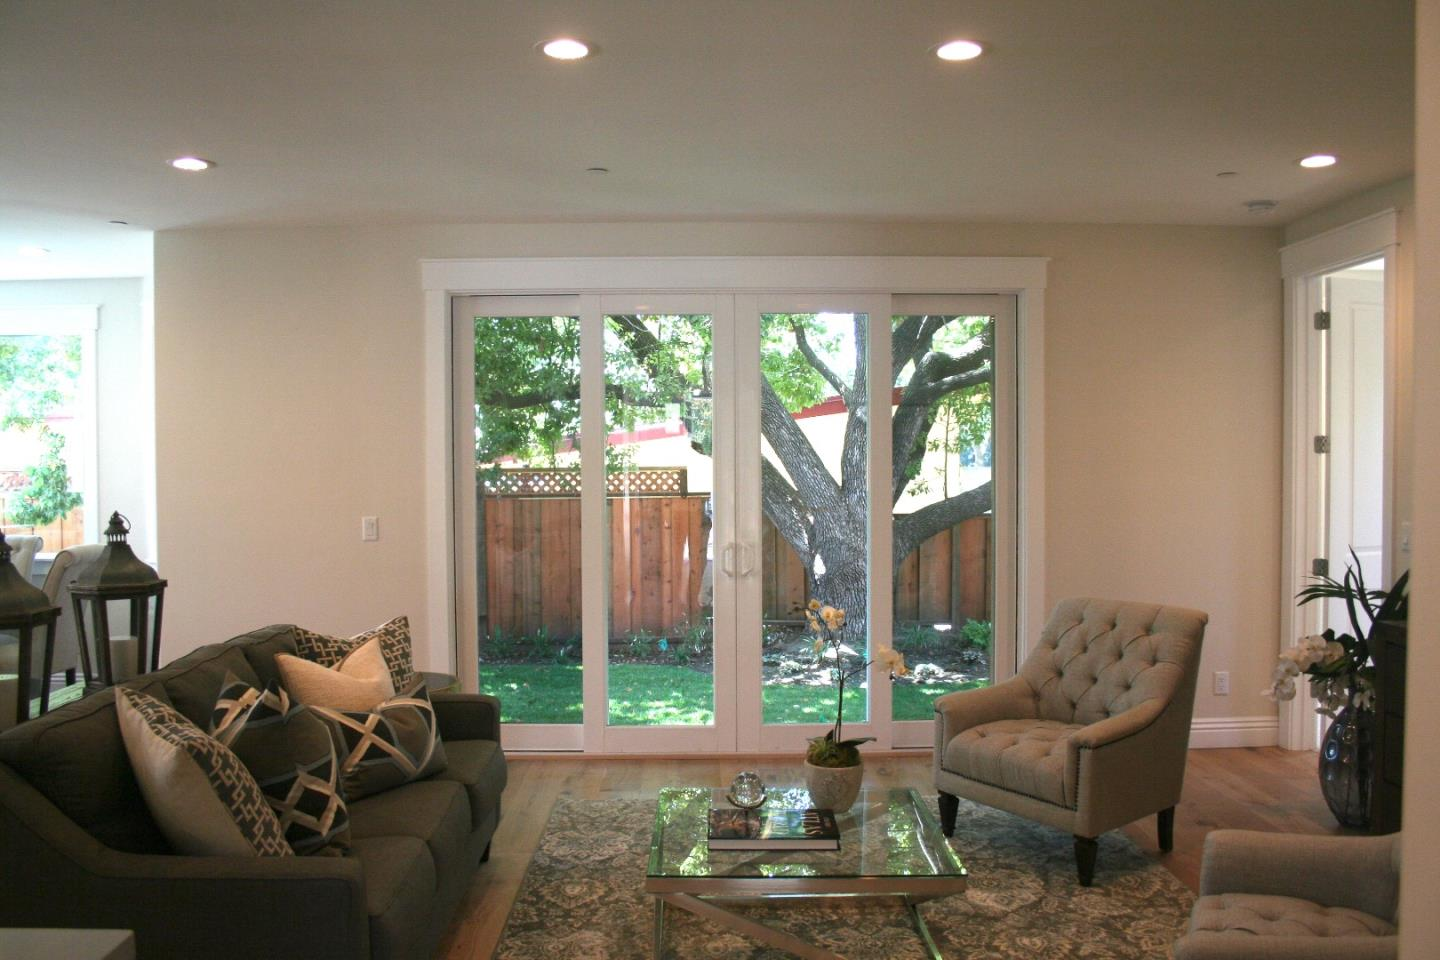 Additional photo for property listing at 1653 Arbor Drive  San Jose, カリフォルニア 95125 アメリカ合衆国